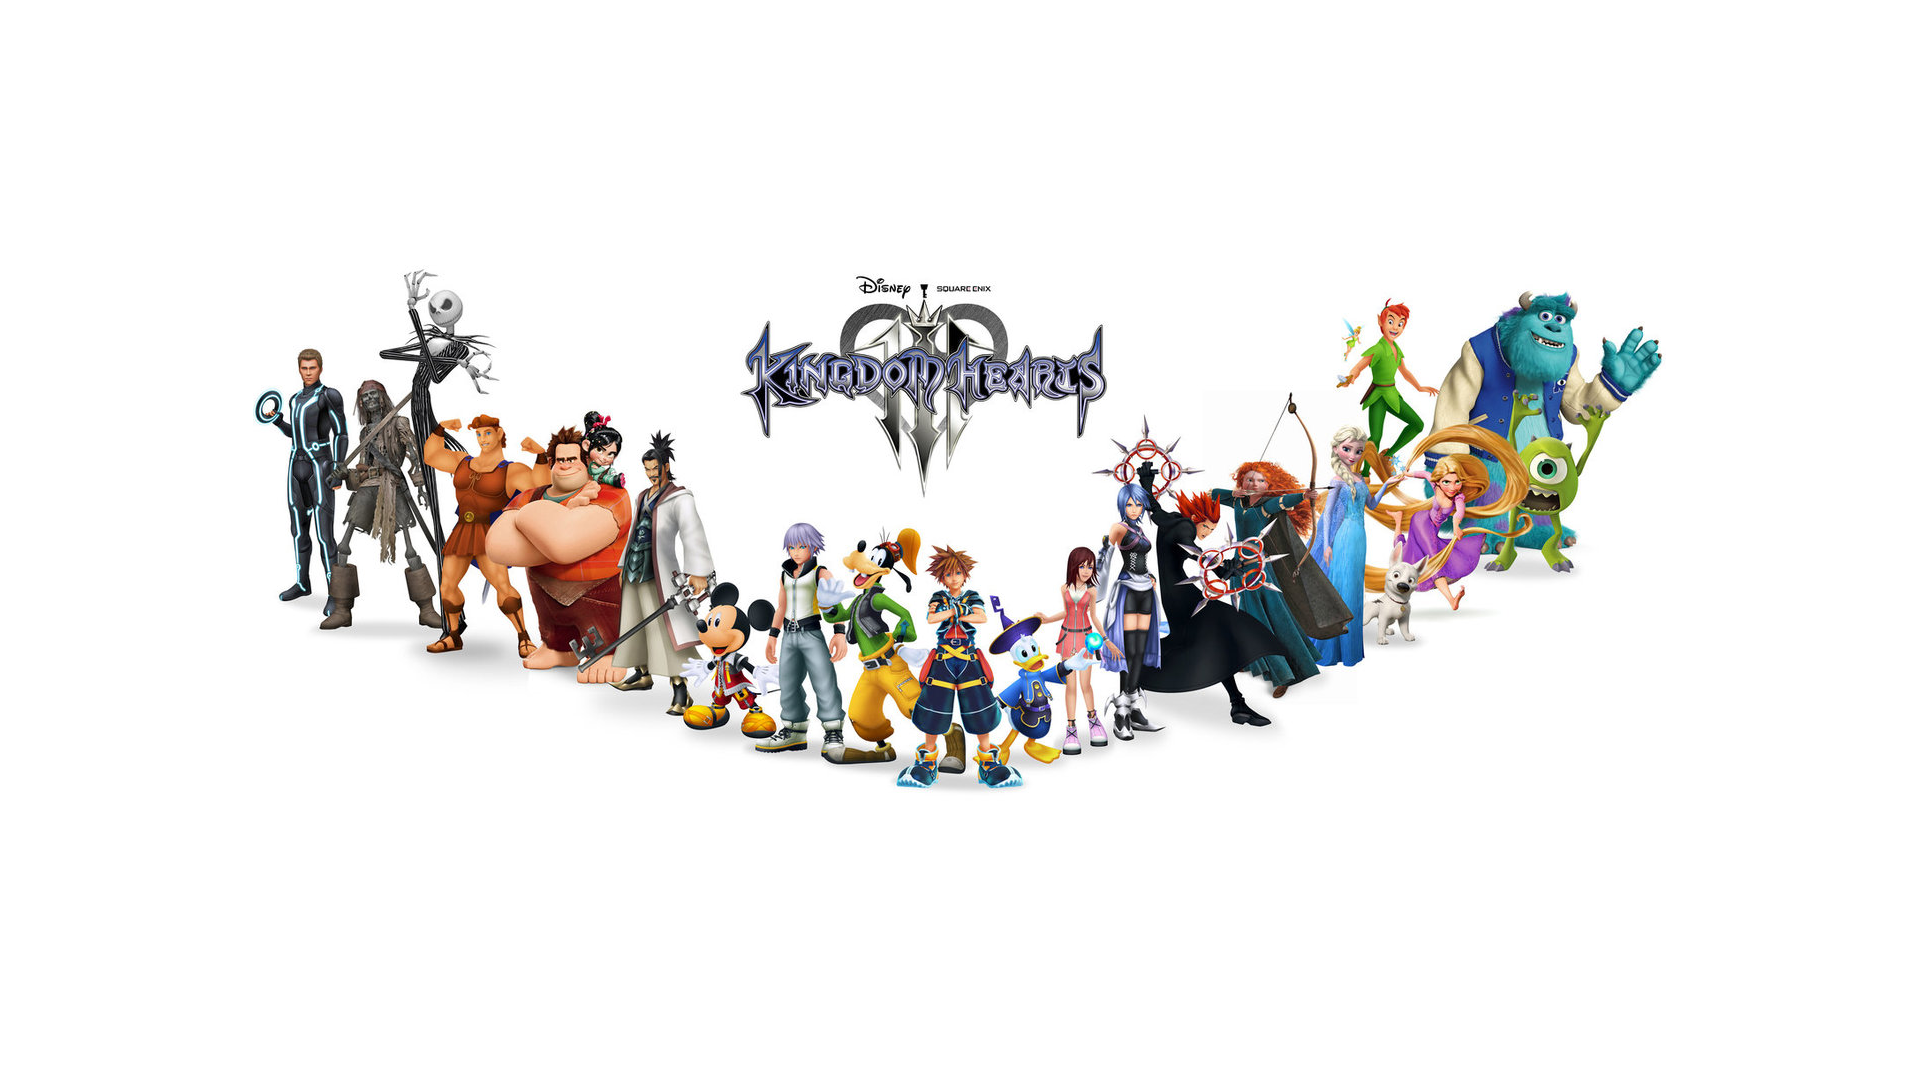 Kingdom Hearts 3 Wallpaper